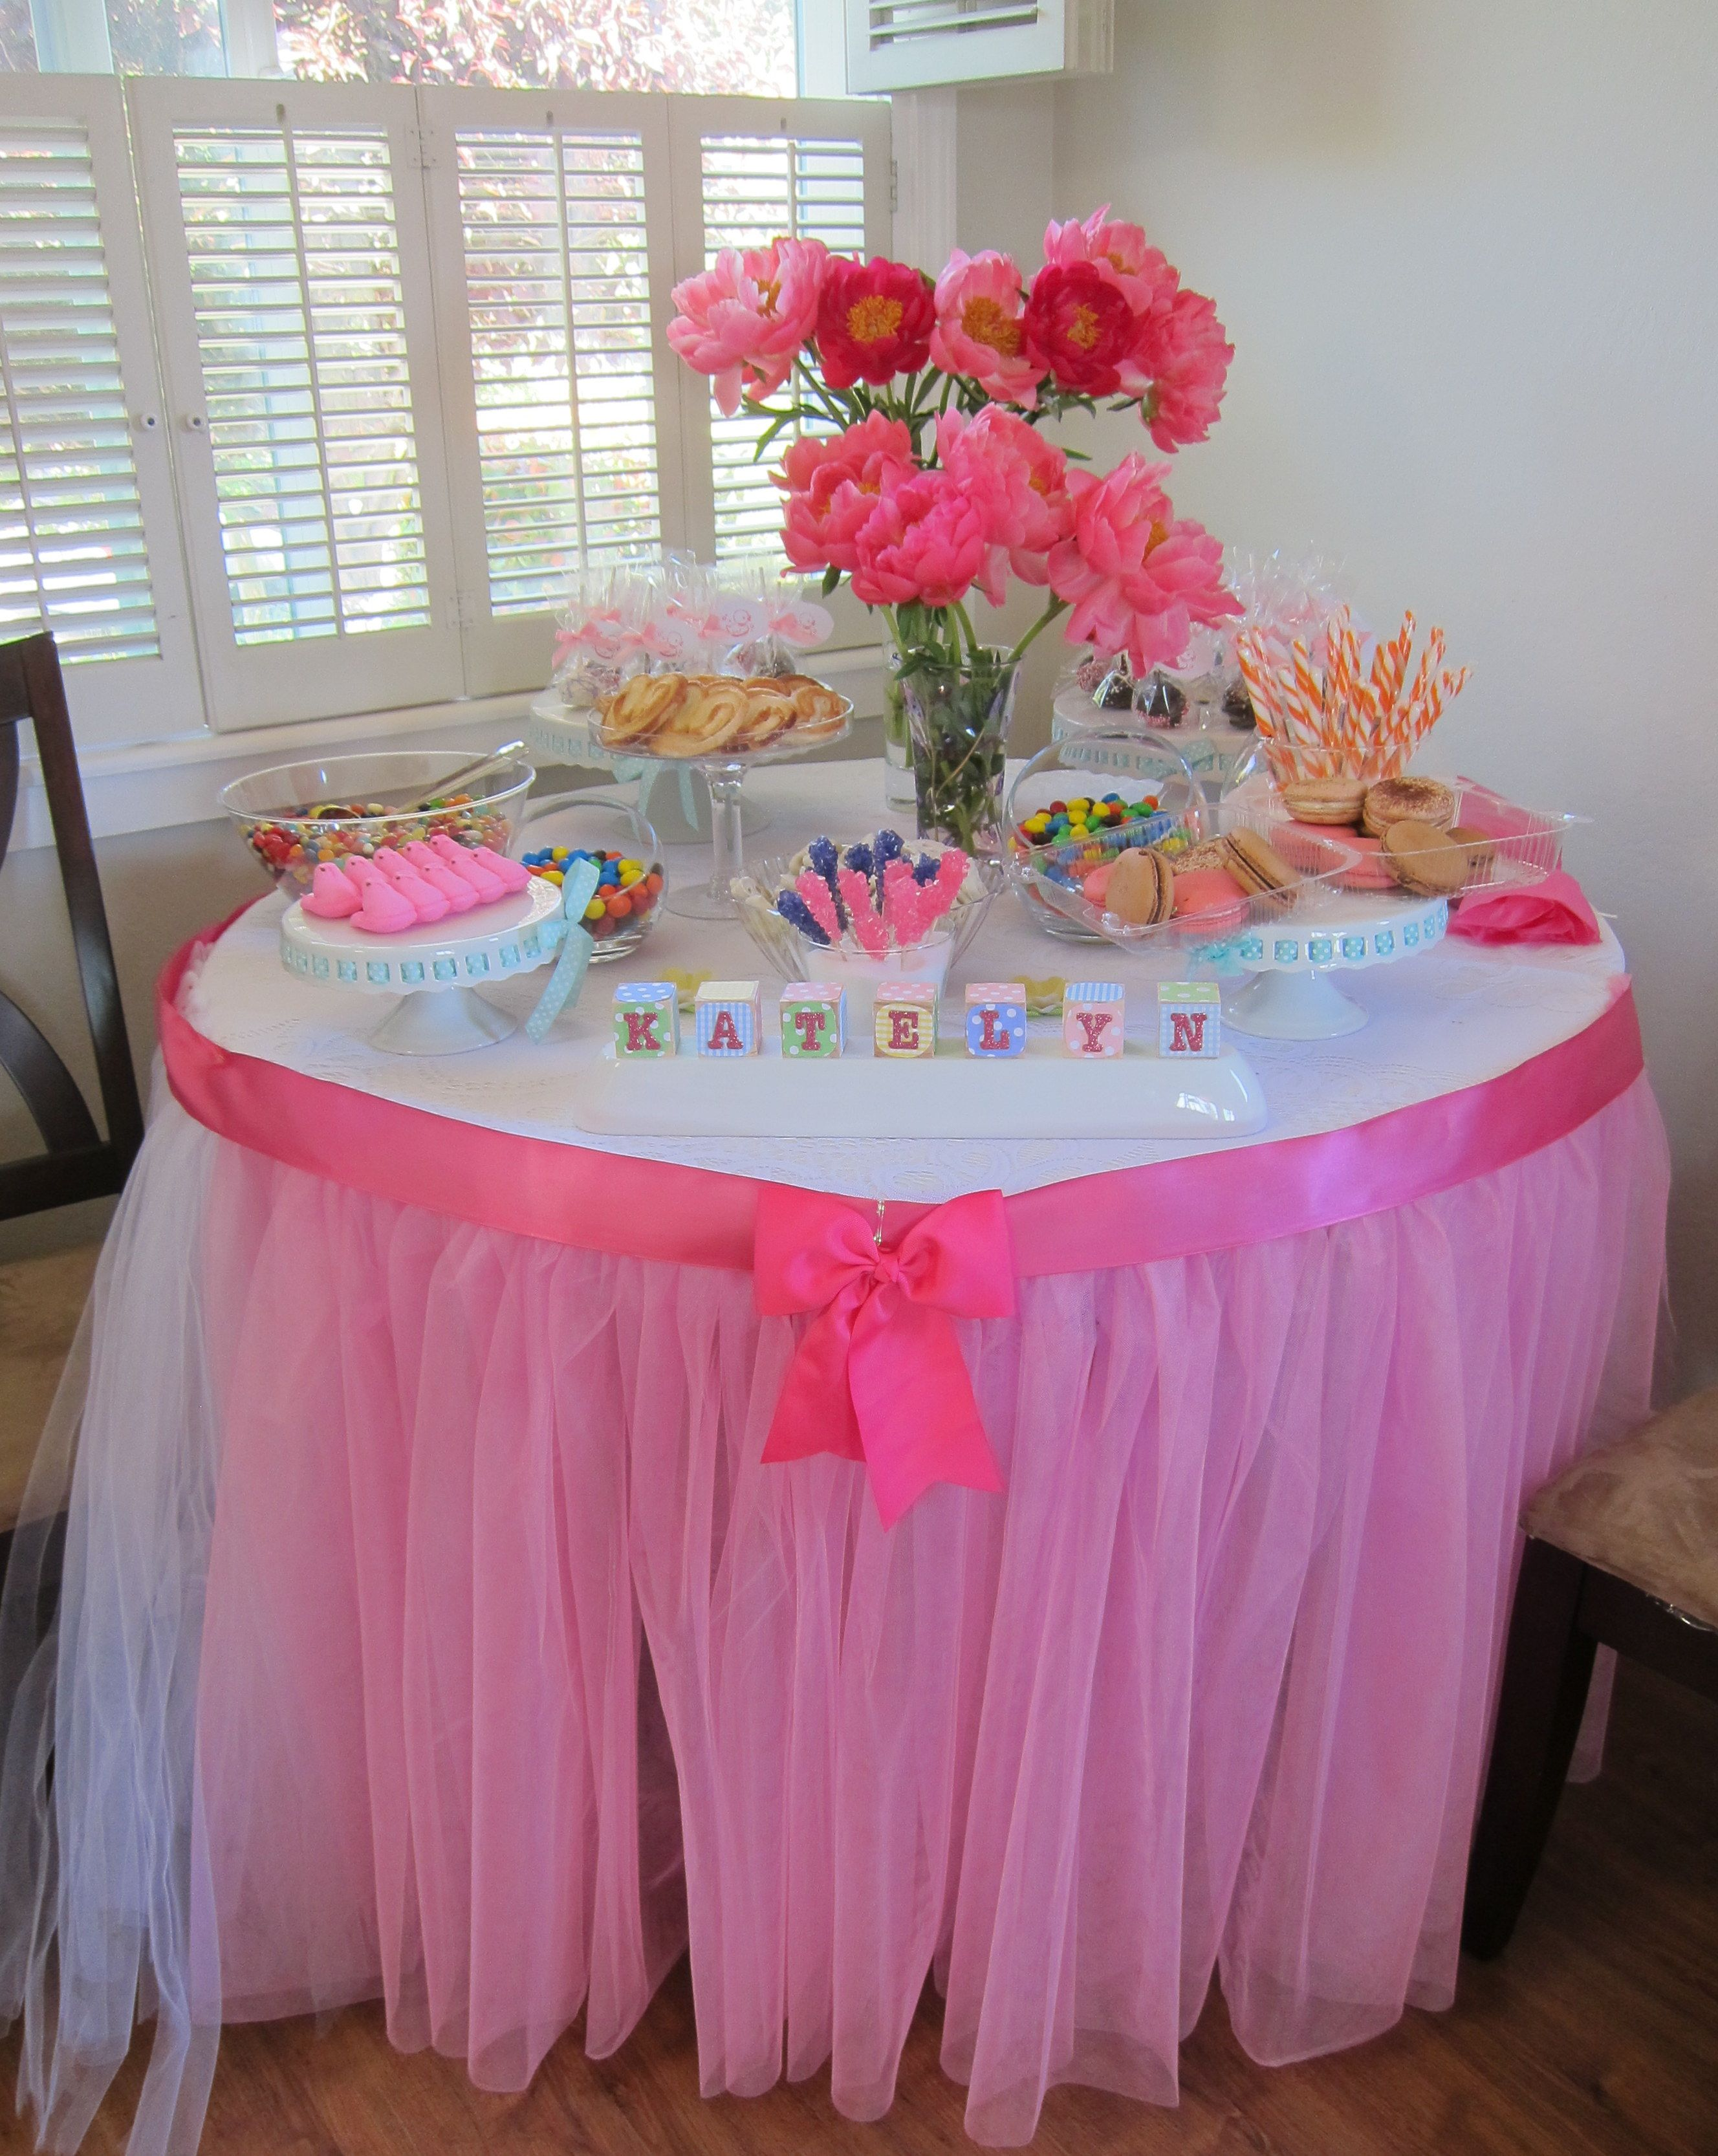 Manteles Para Mesas Dulces Replace The White Table Clothe With An Black One